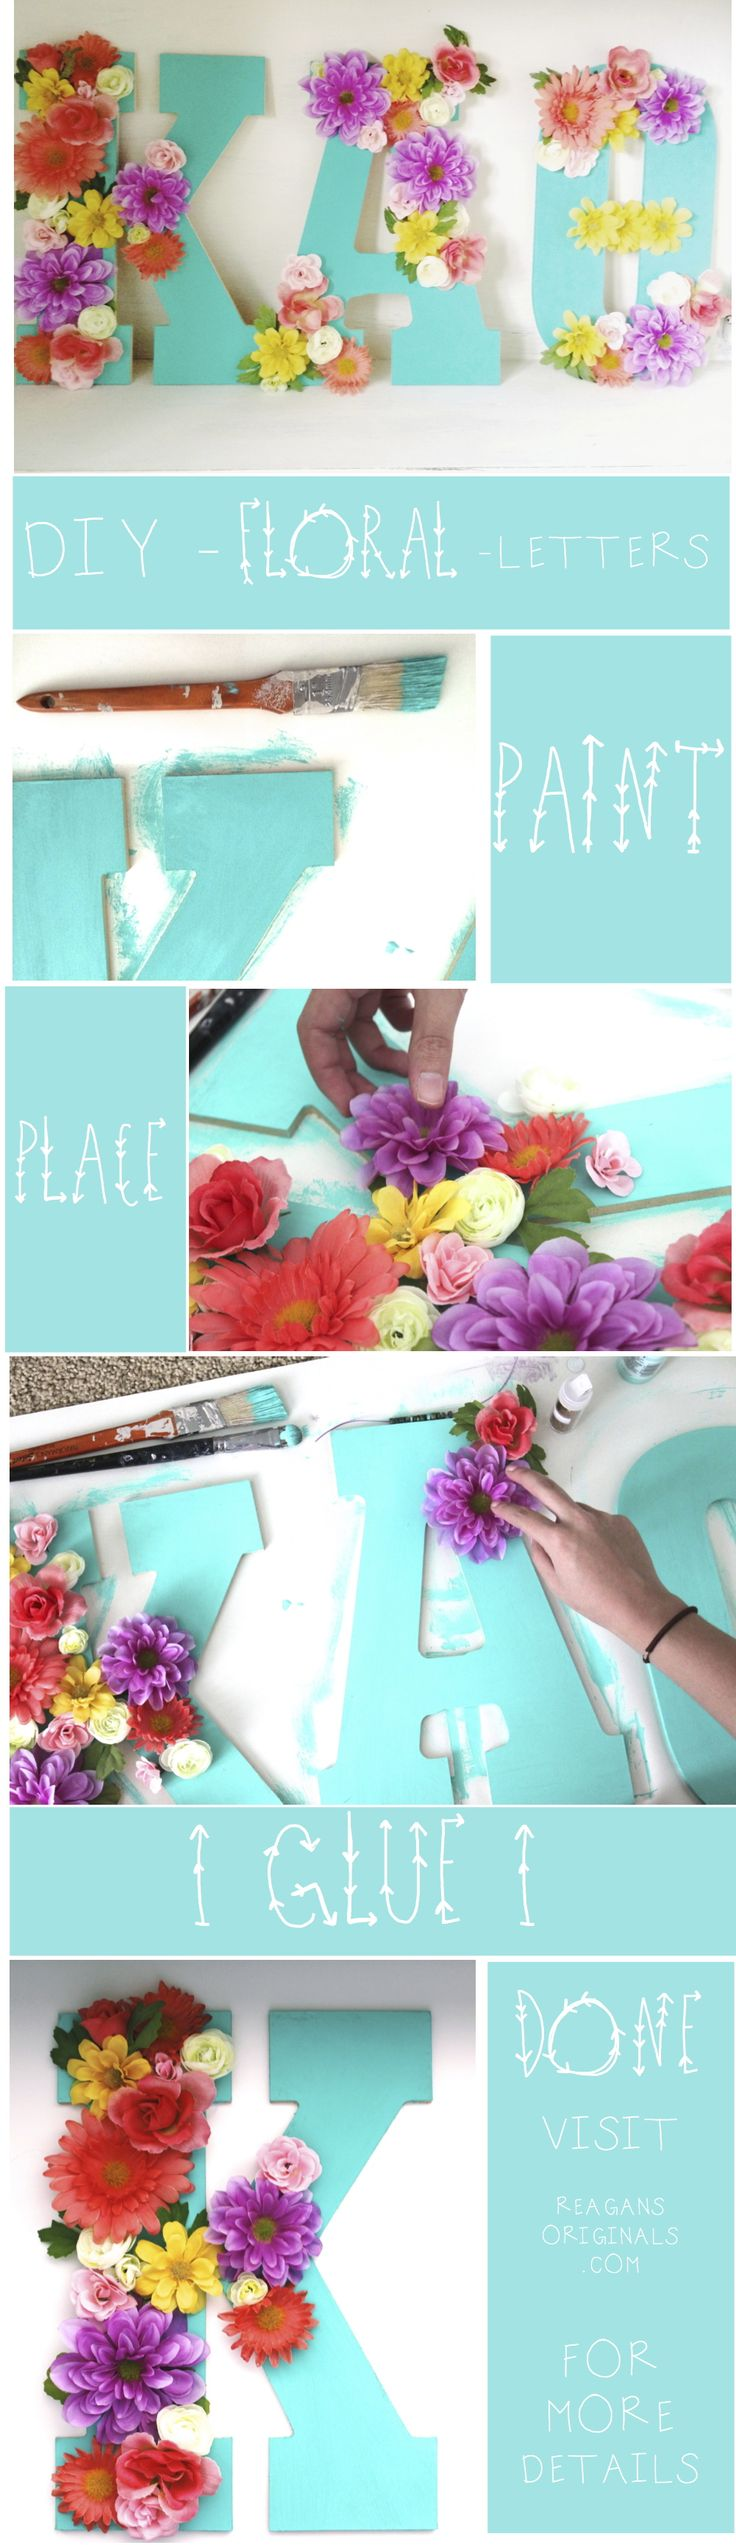 DIY Floral Letters | A Super Easy and Creative idea to make, enjoy doing it with your love ones, even kids! #pioneersettler